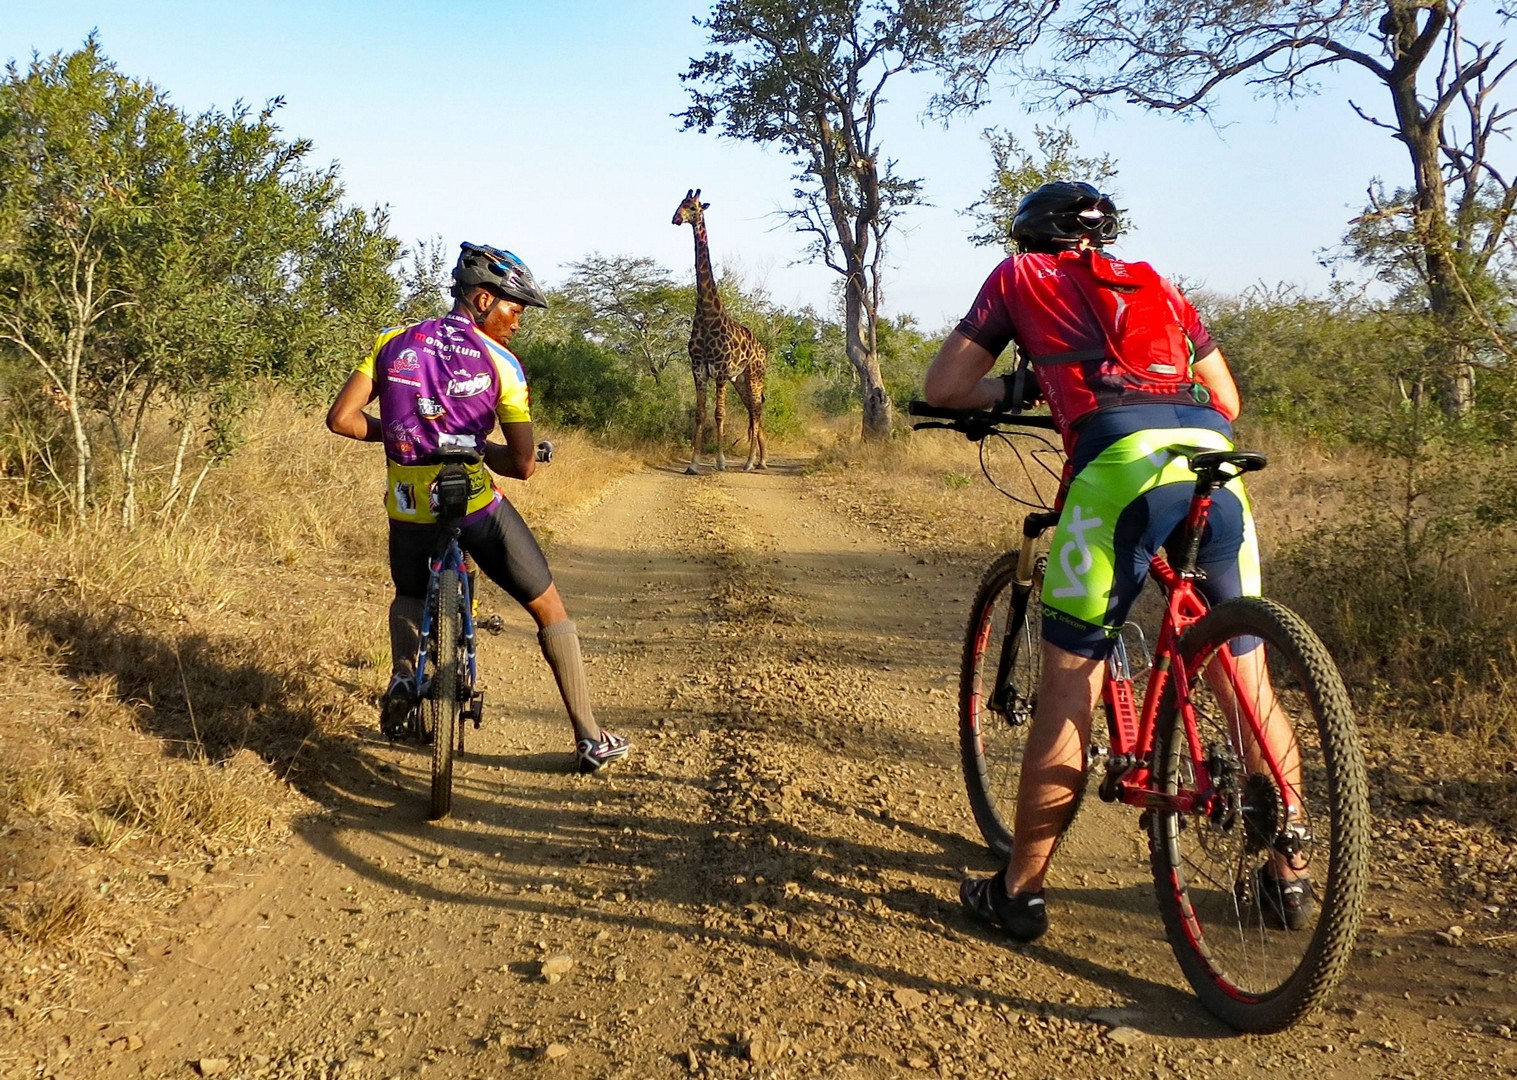 cycling-adventure-swaziland-cycling safari-saddle-skedaddle.jpg - Eswatini (Swaziland) - Cycling Safari - Cycling Adventures